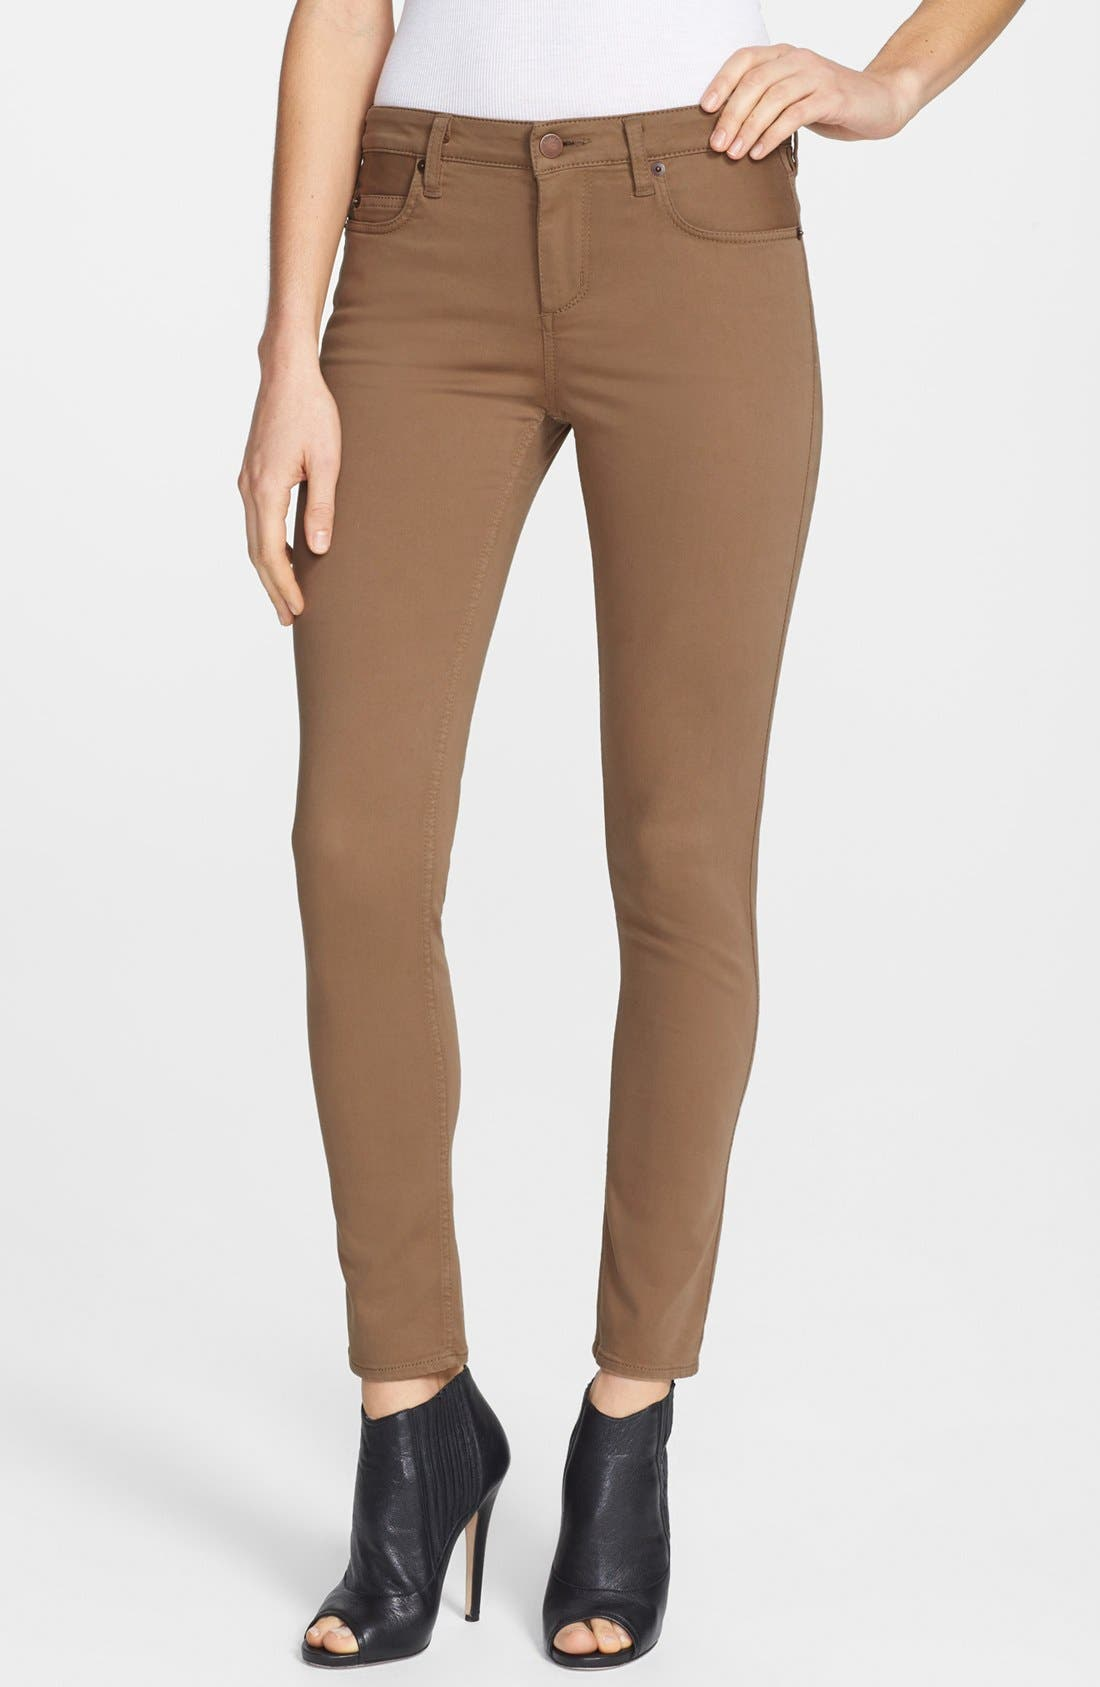 Alternate Image 1 Selected - Theory 'Billy W.' Ankle Stretch Skinny Jeans